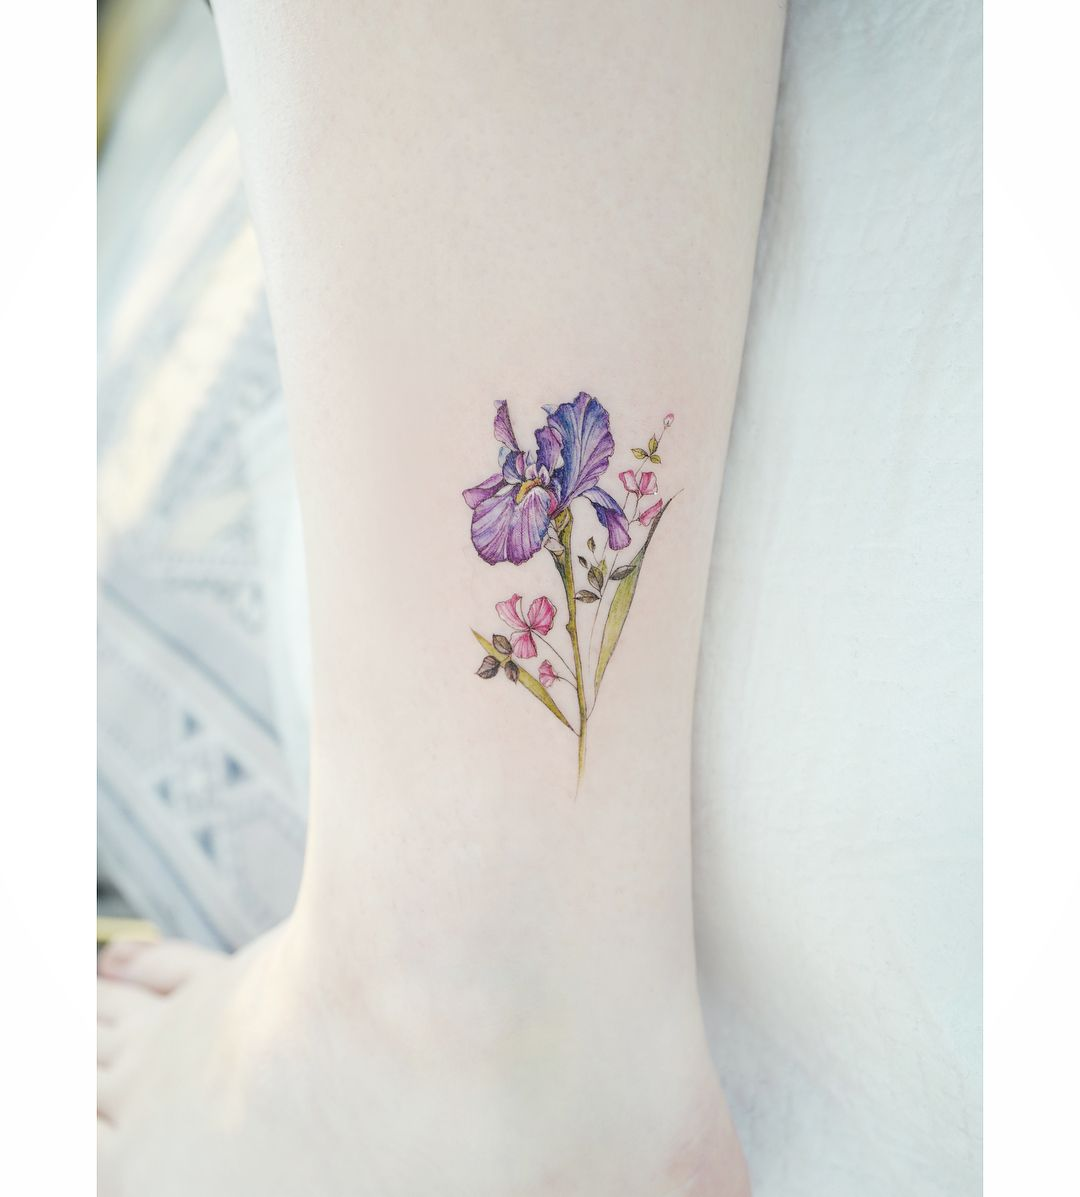 Iris Sweetpea Iris Tattoo Tattoos For Women Minimalist Tattoo